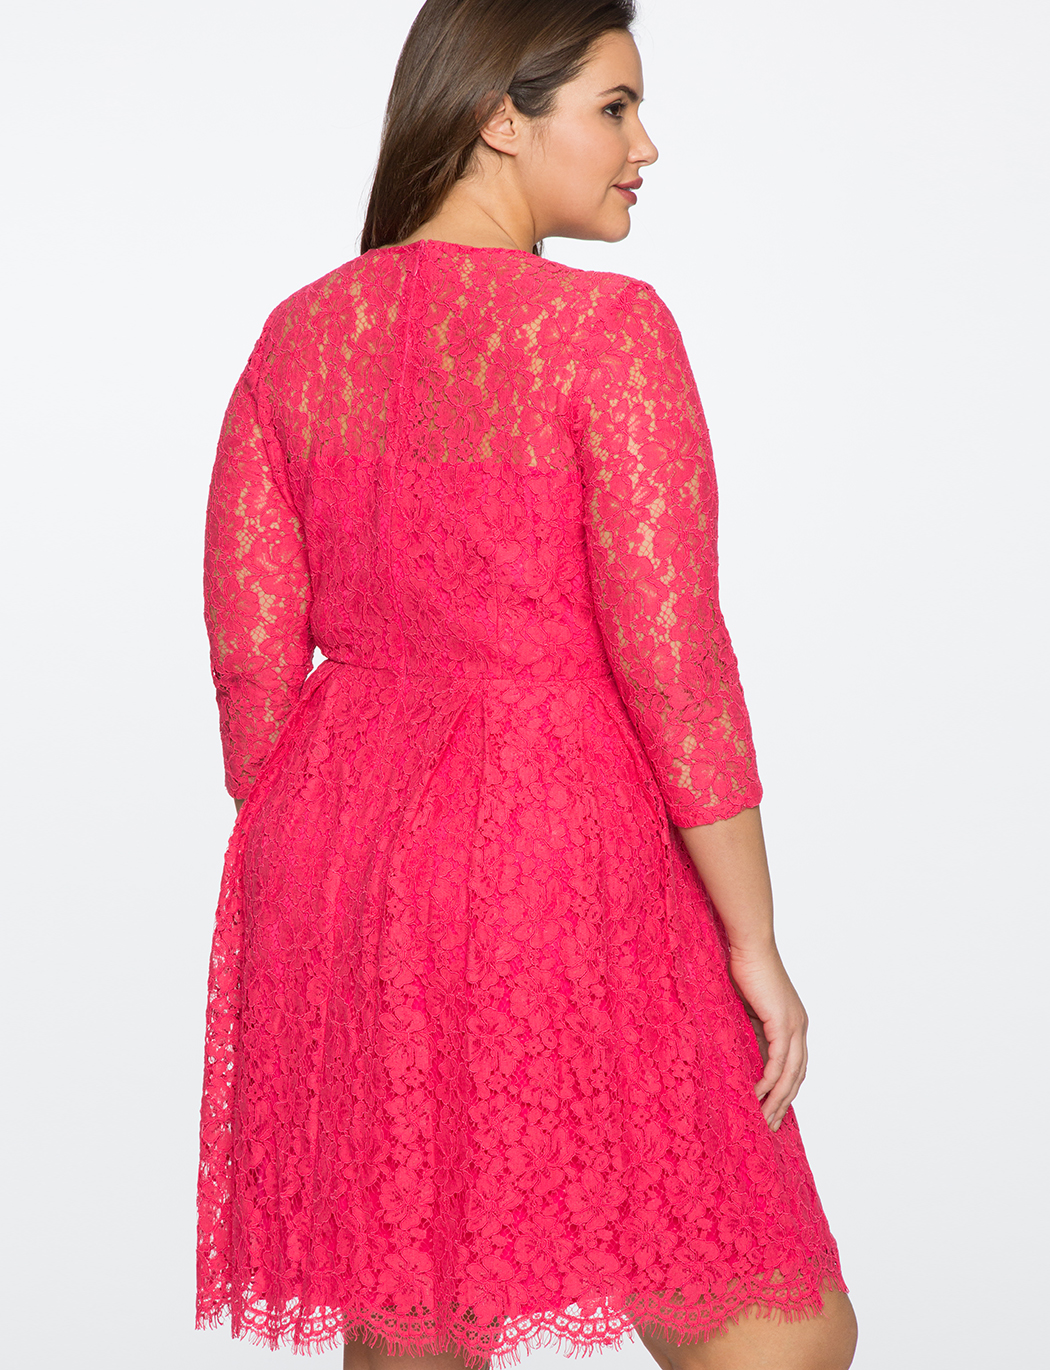 Lace Fit and Flare Dress with 3/4 Sleeves